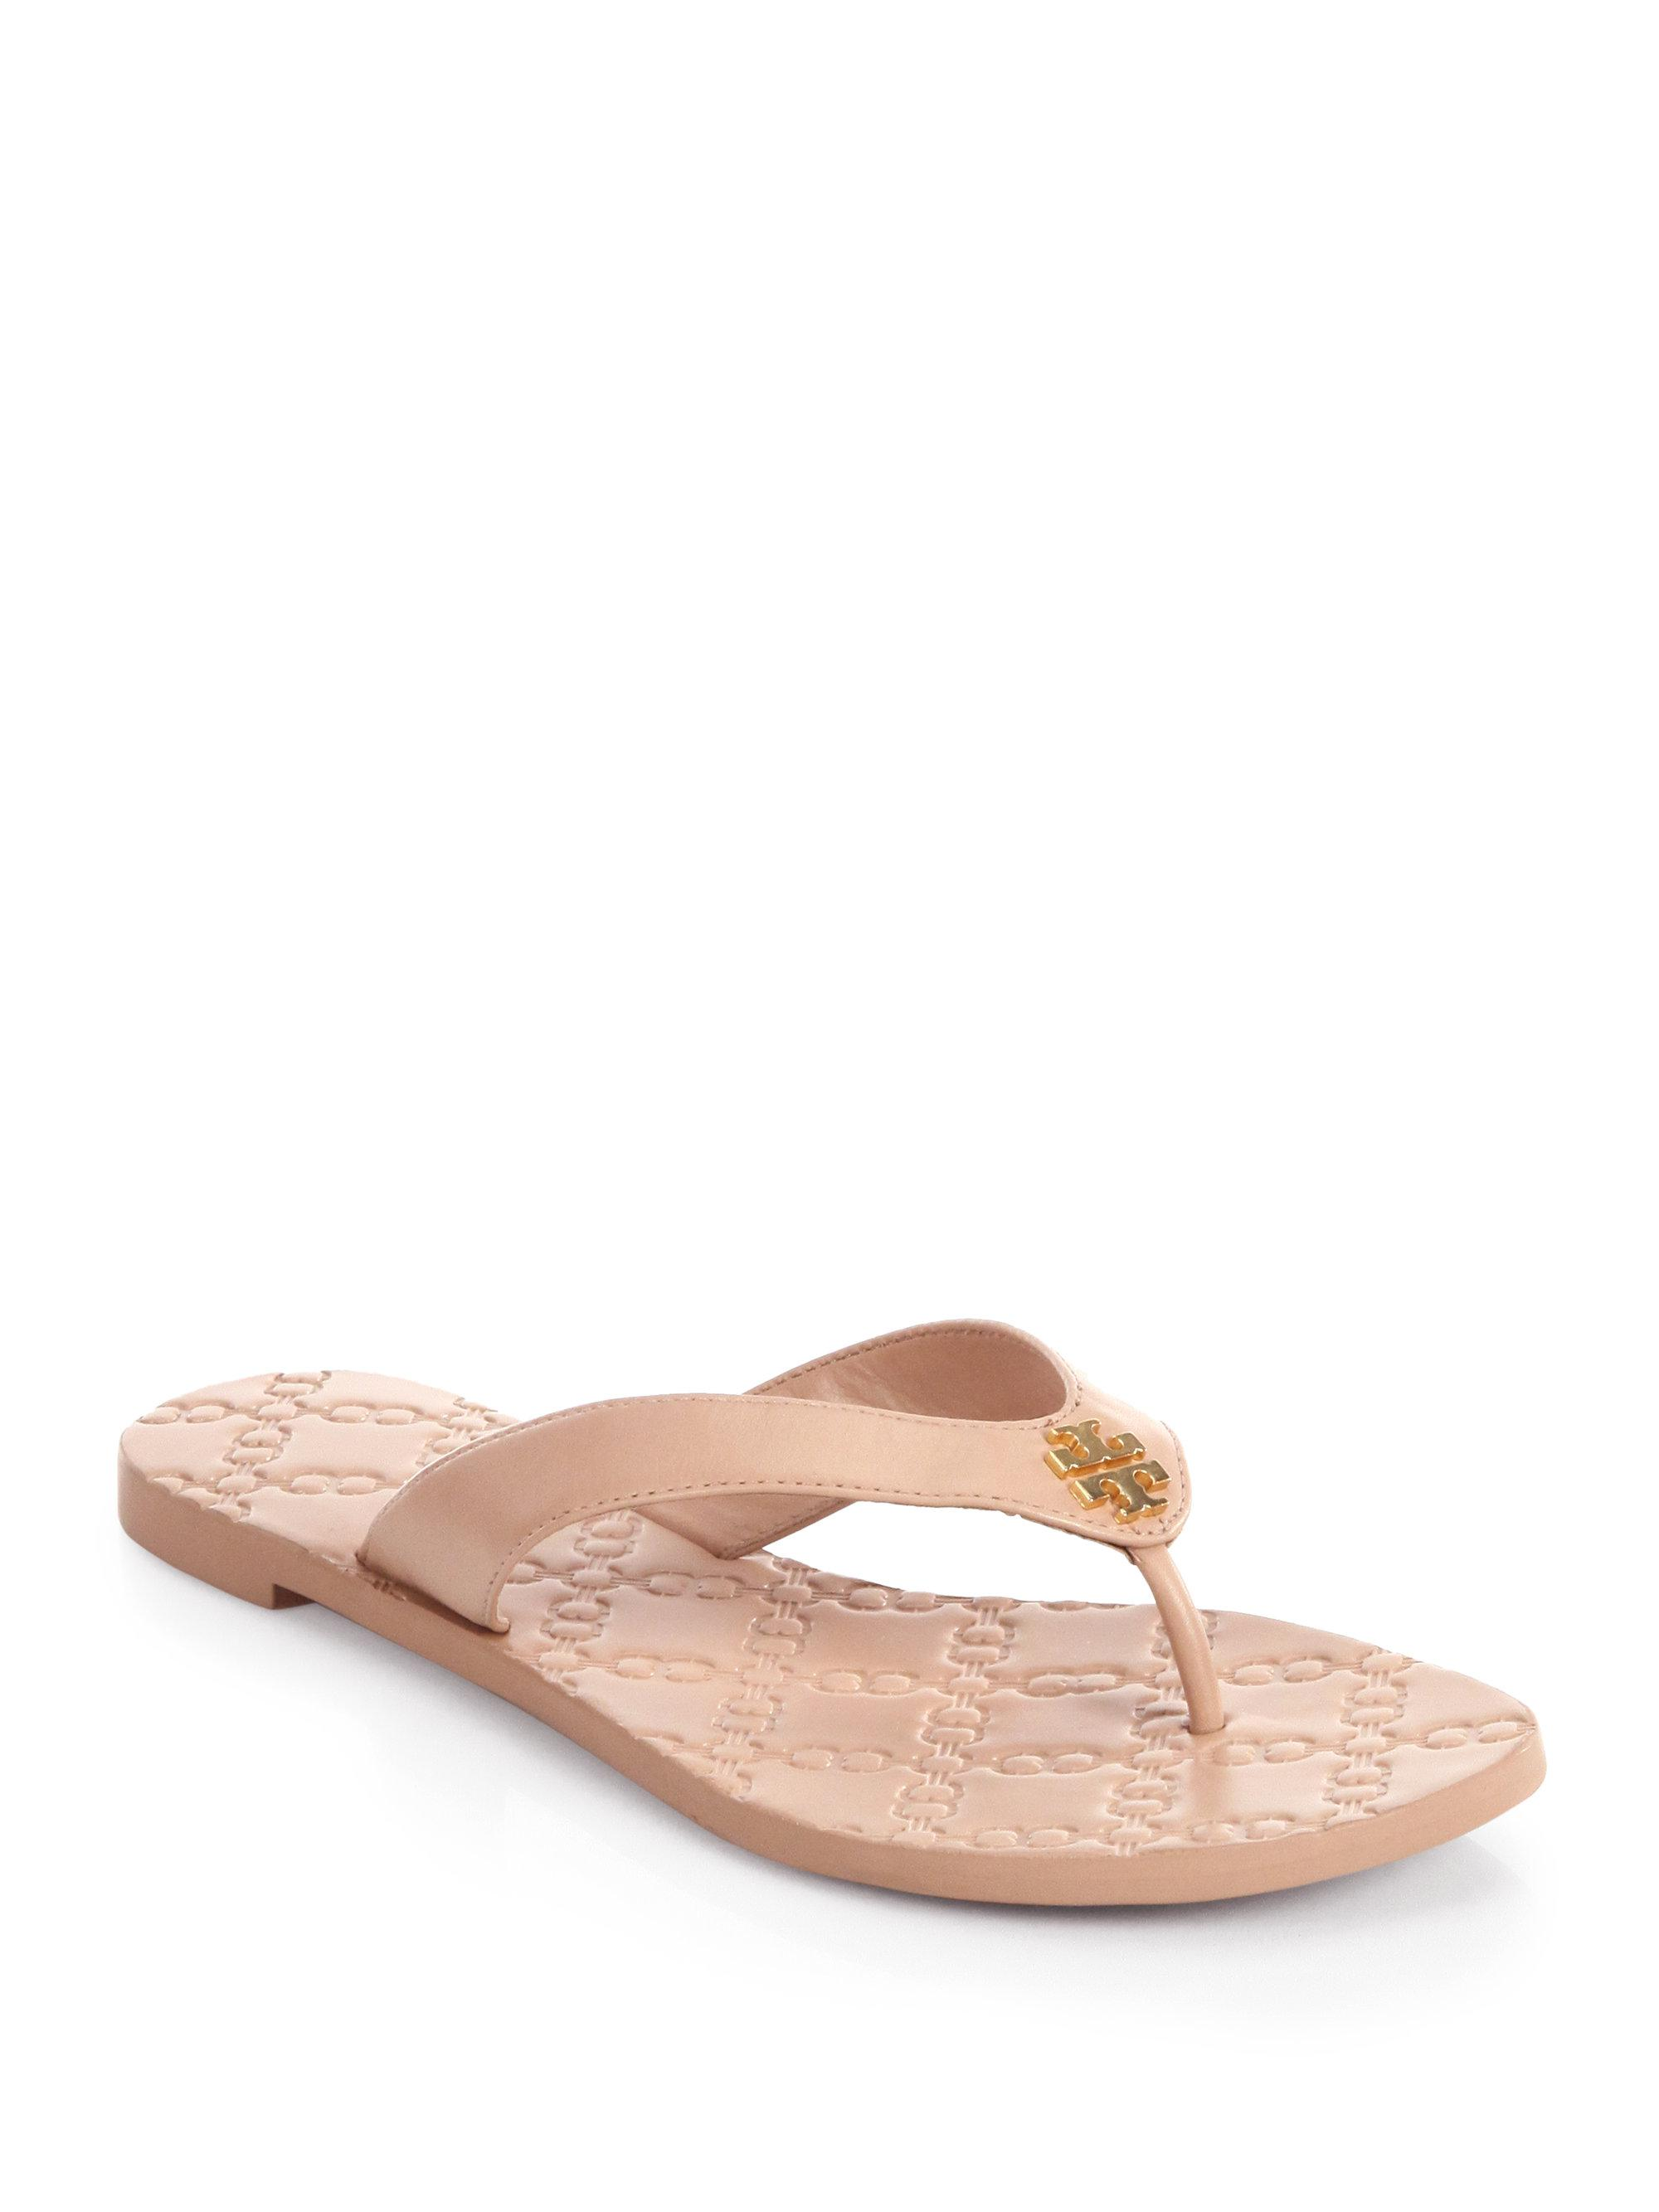 23f5ee6c4c5900 Lyst - Tory Burch Monroe Leather Thong Sandals